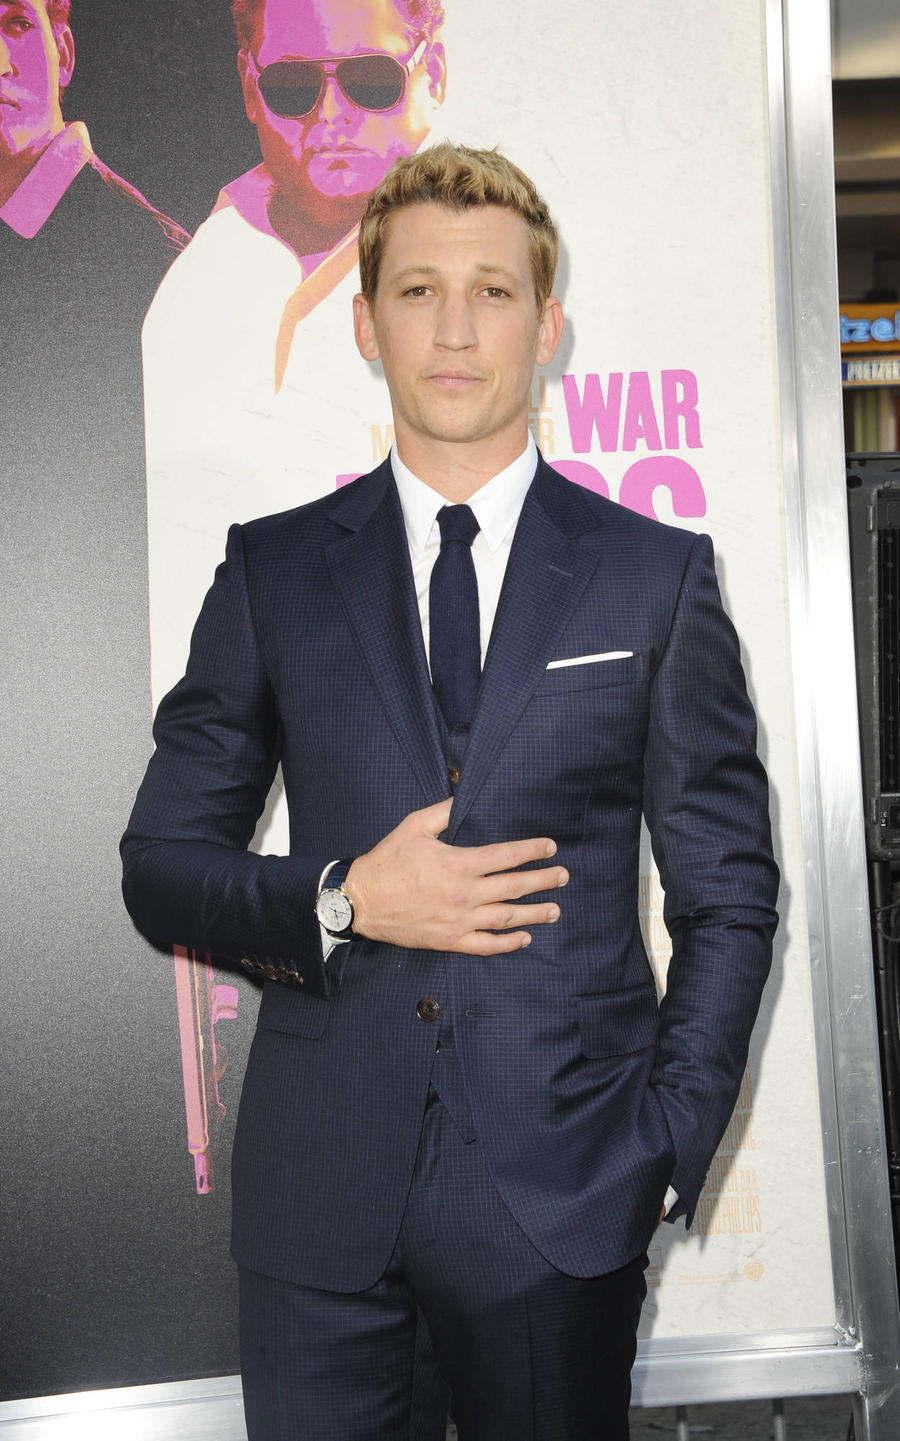 Miles Teller's Dad Pushed Him To Land War Dogs Role